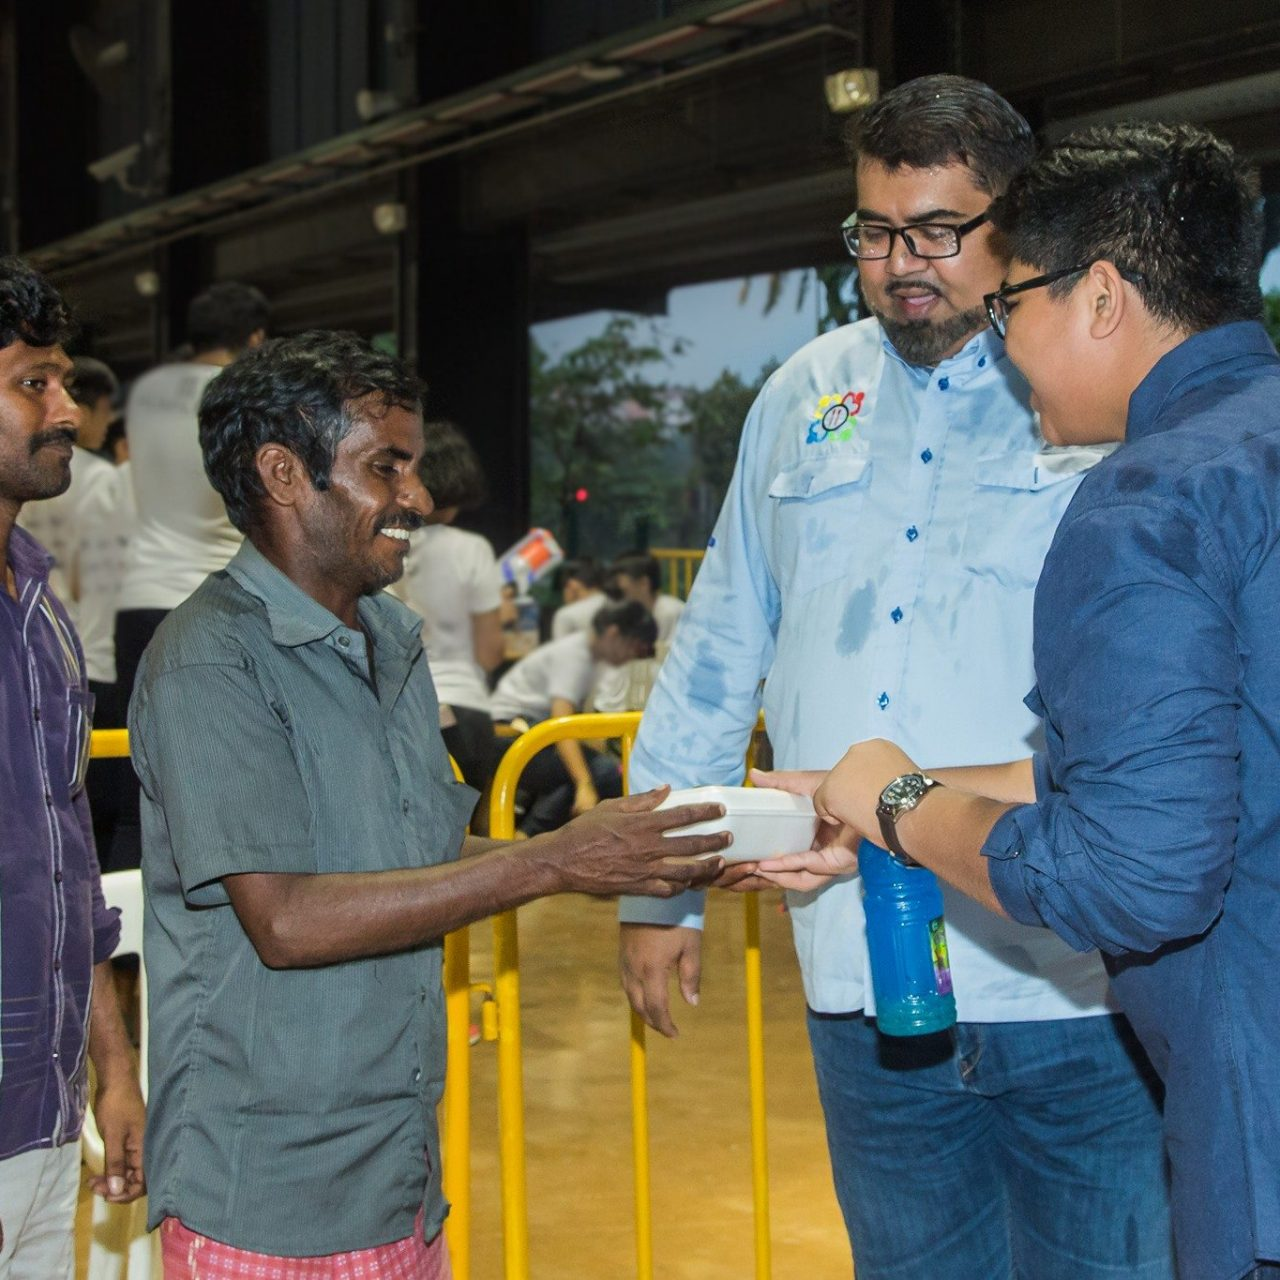 Nizar, second from right, helping to distribute food to foreign workers.